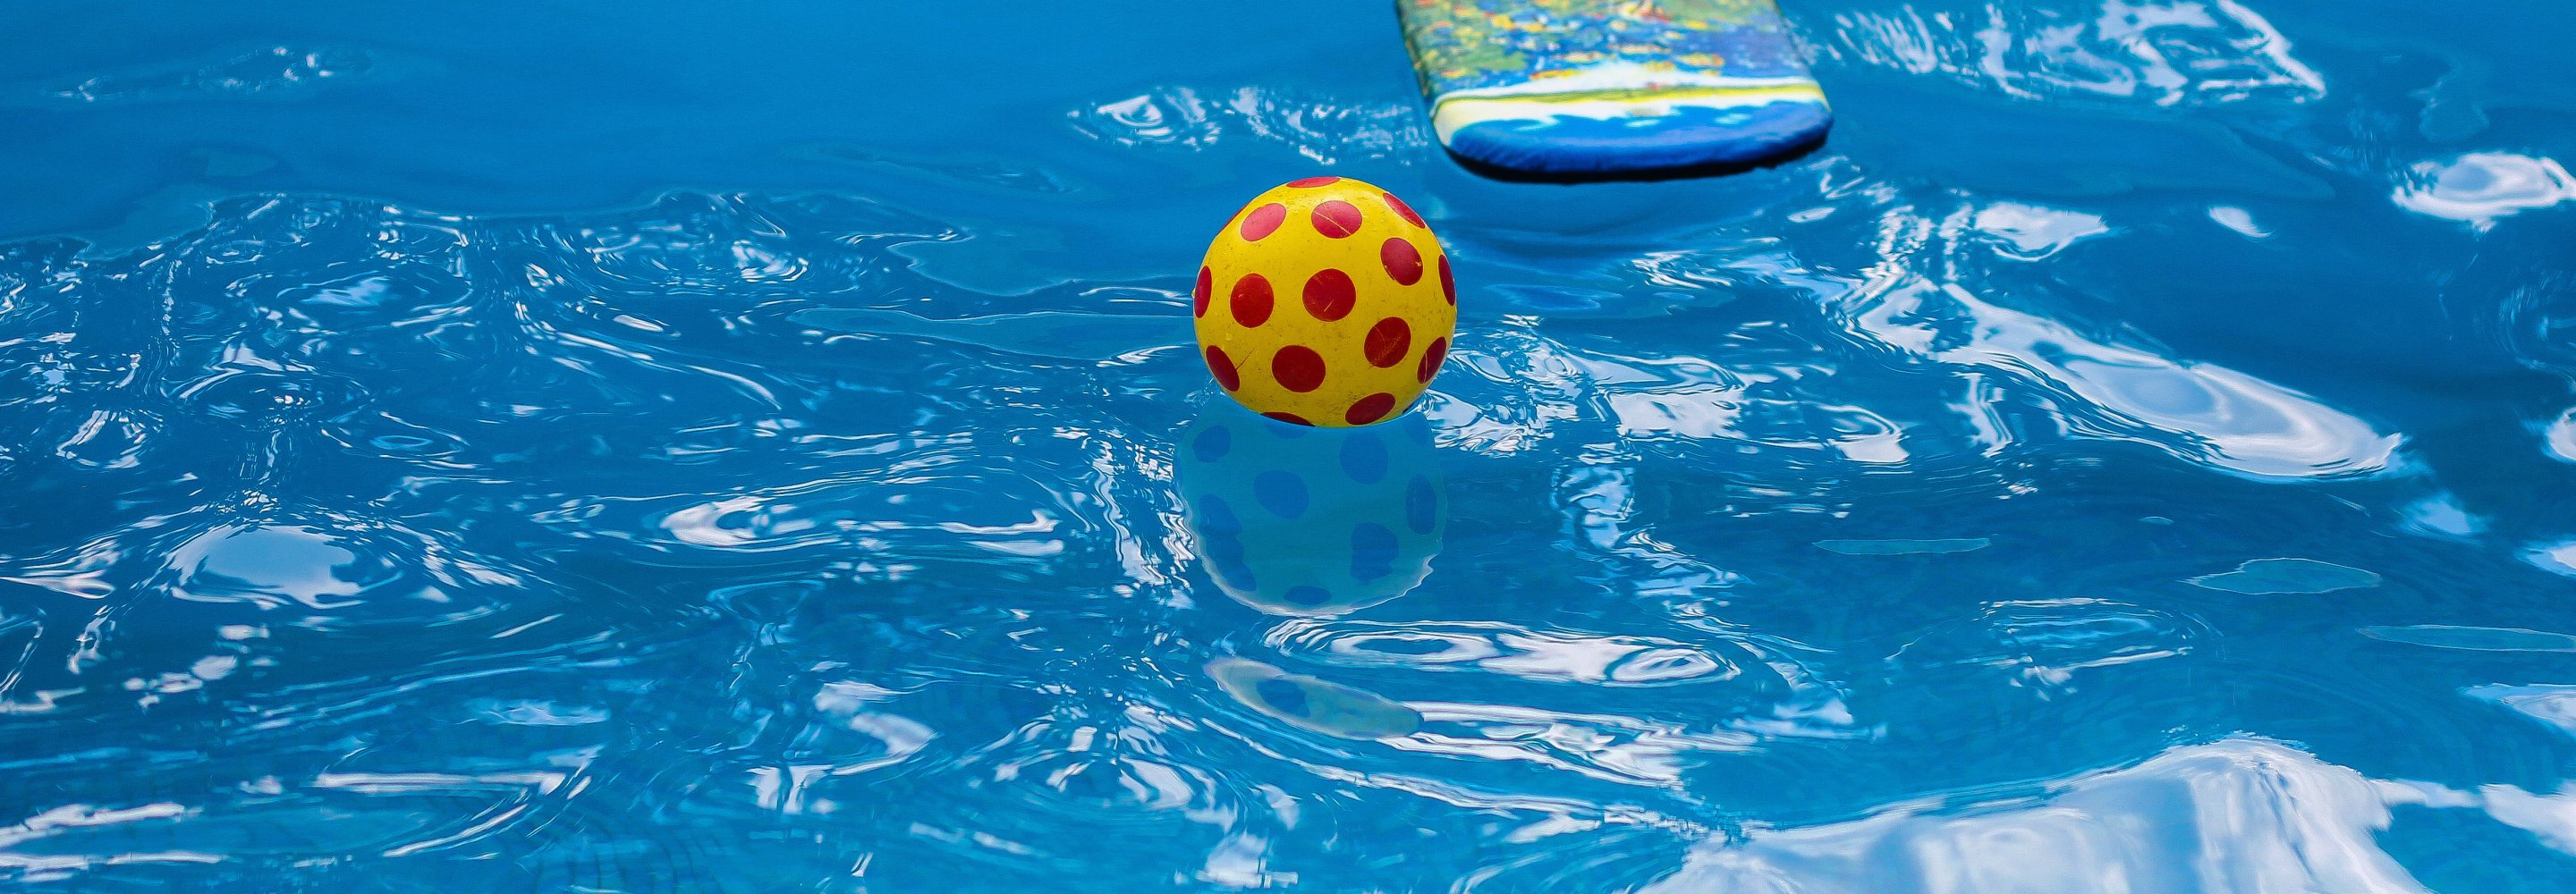 Ralli Ltd: How safe is your swimming pool? Banner